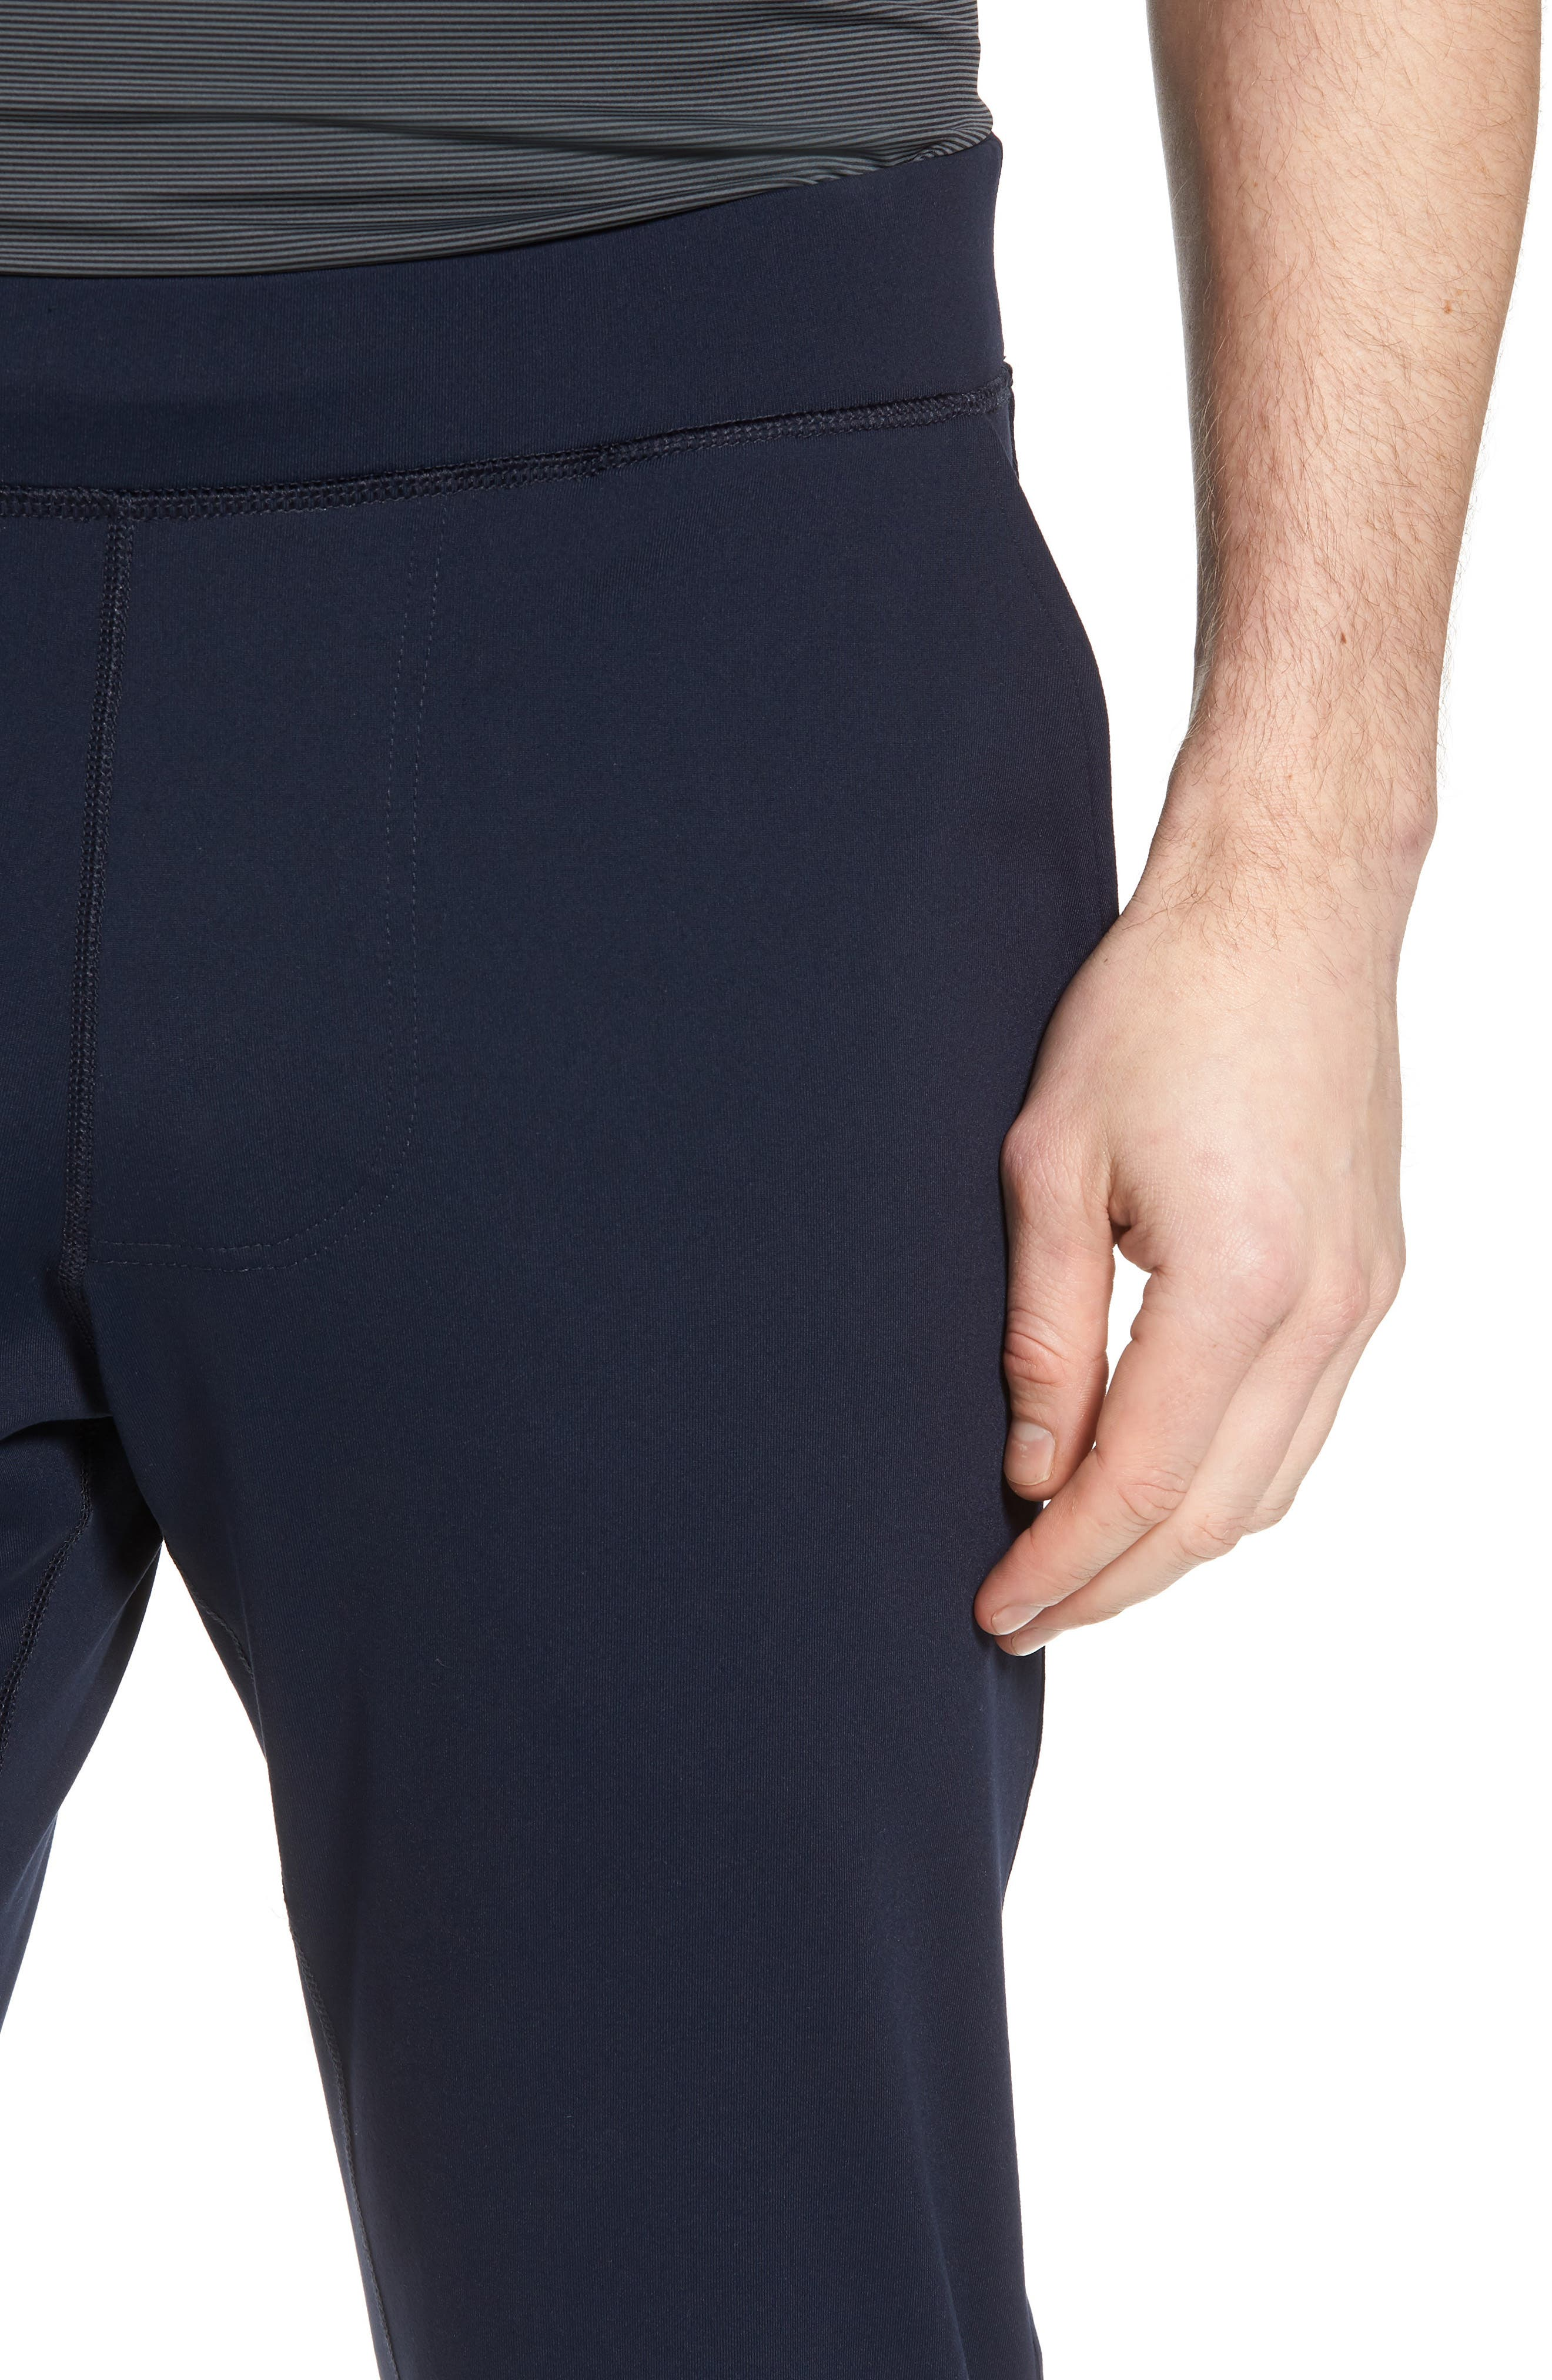 206 Pants,                             Alternate thumbnail 4, color,                             NAVY